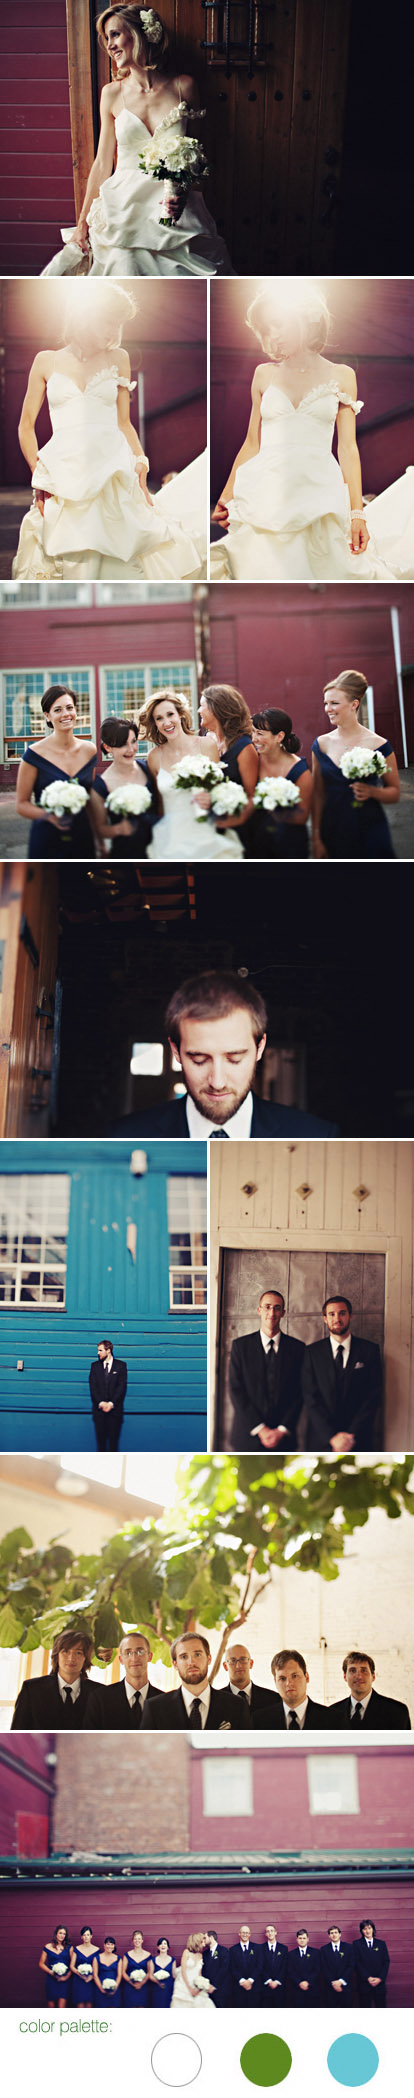 Creative, romantic, urban Seattle real wedding at Sodo Park by Herban Feast, blue, white and green wedding color palette, images by Sean Flanigan